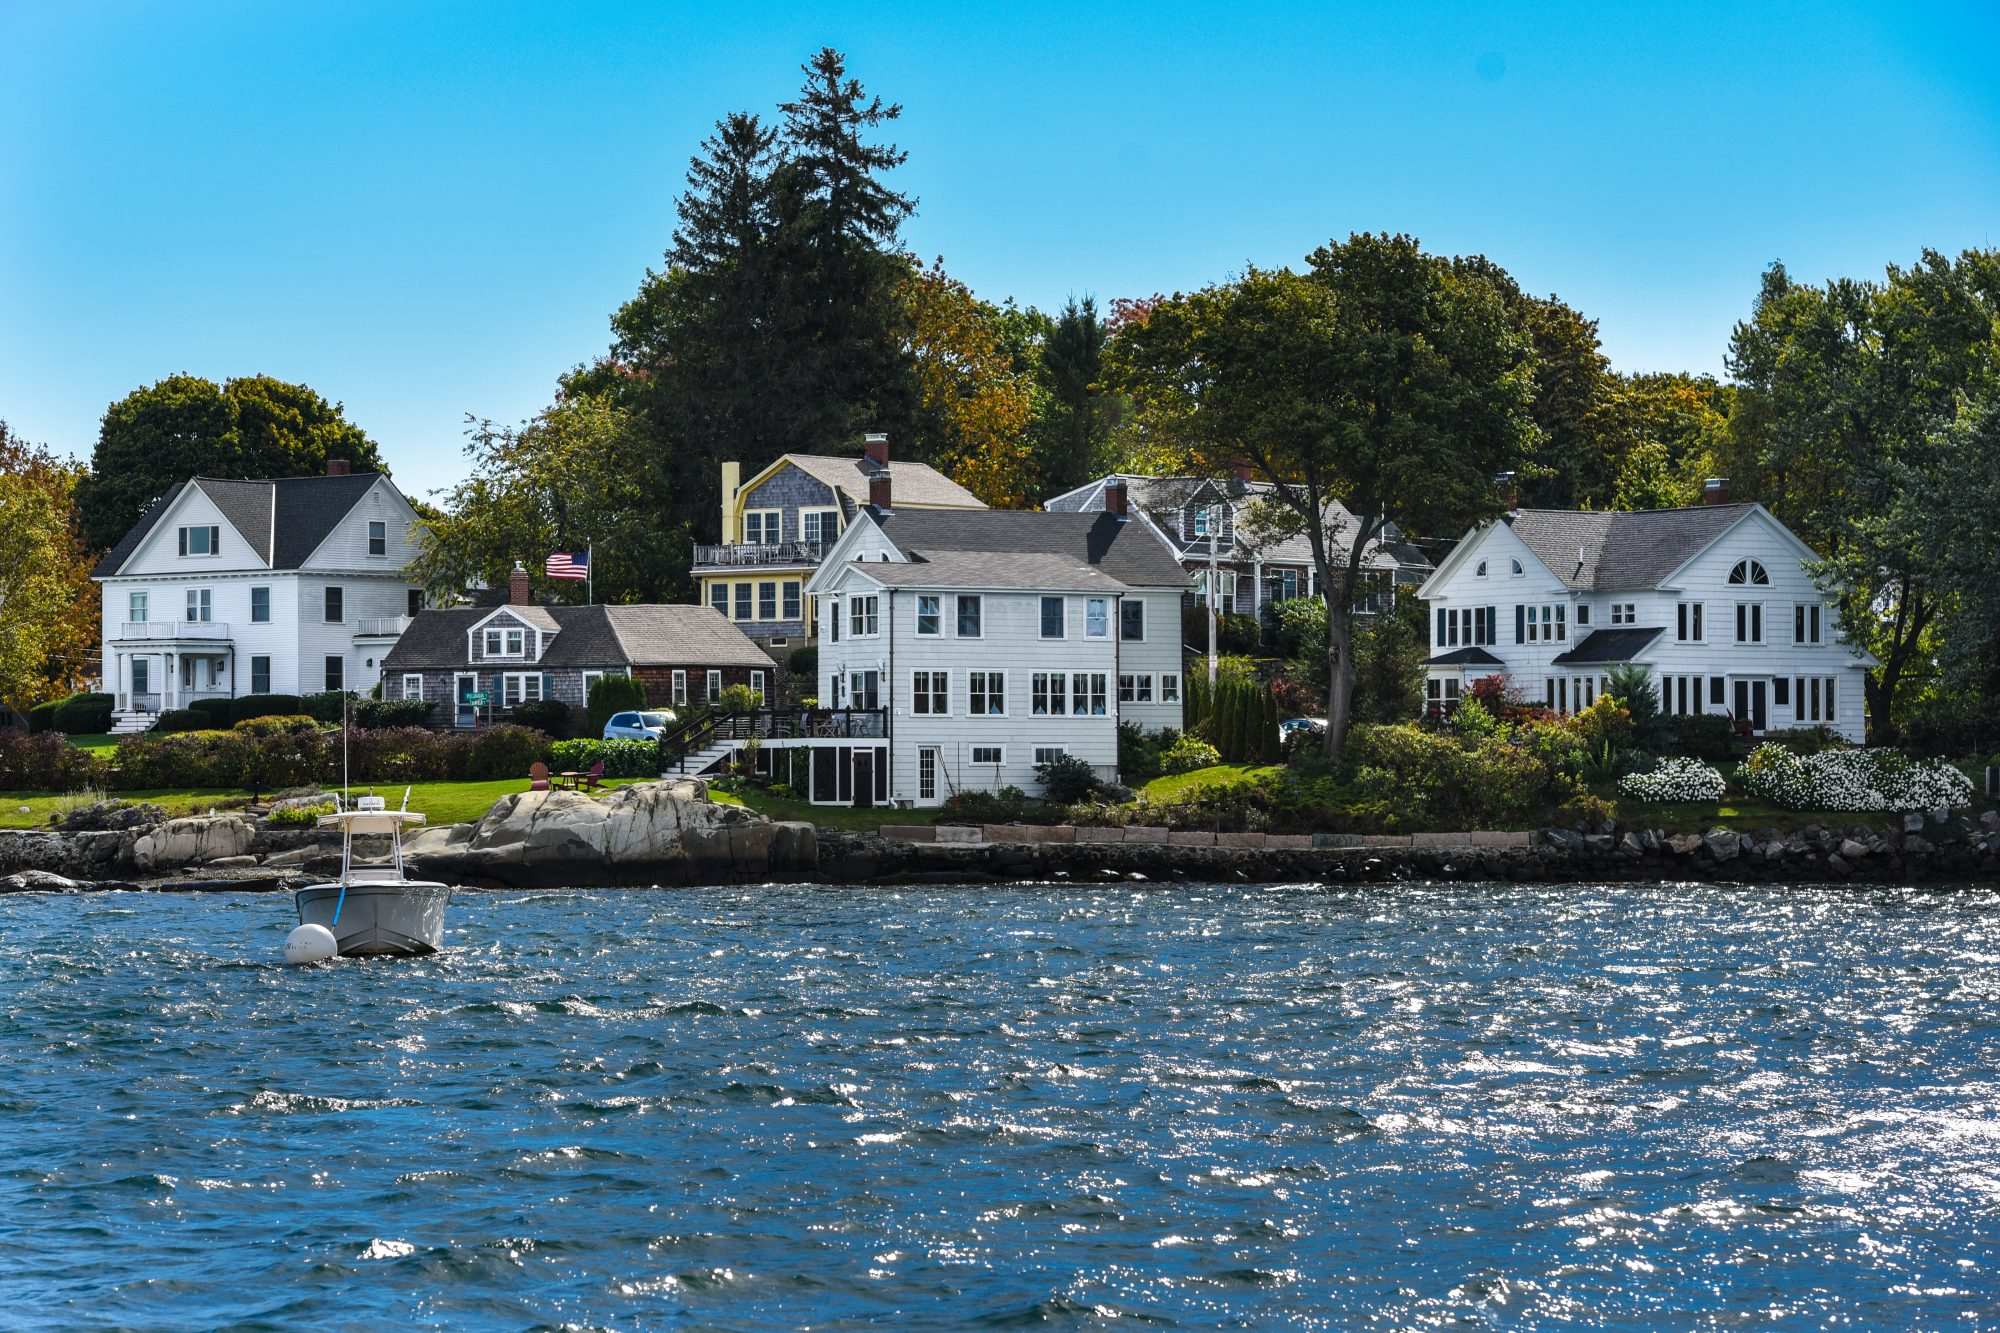 This tiny town at the mouth of the Piscataqua River is made up entirely of islands, adding a dreamy quality hard to find along the New England shore. And the Victorian luster of the Wentworth by the Sea hotel makes the setting all the lovelier.